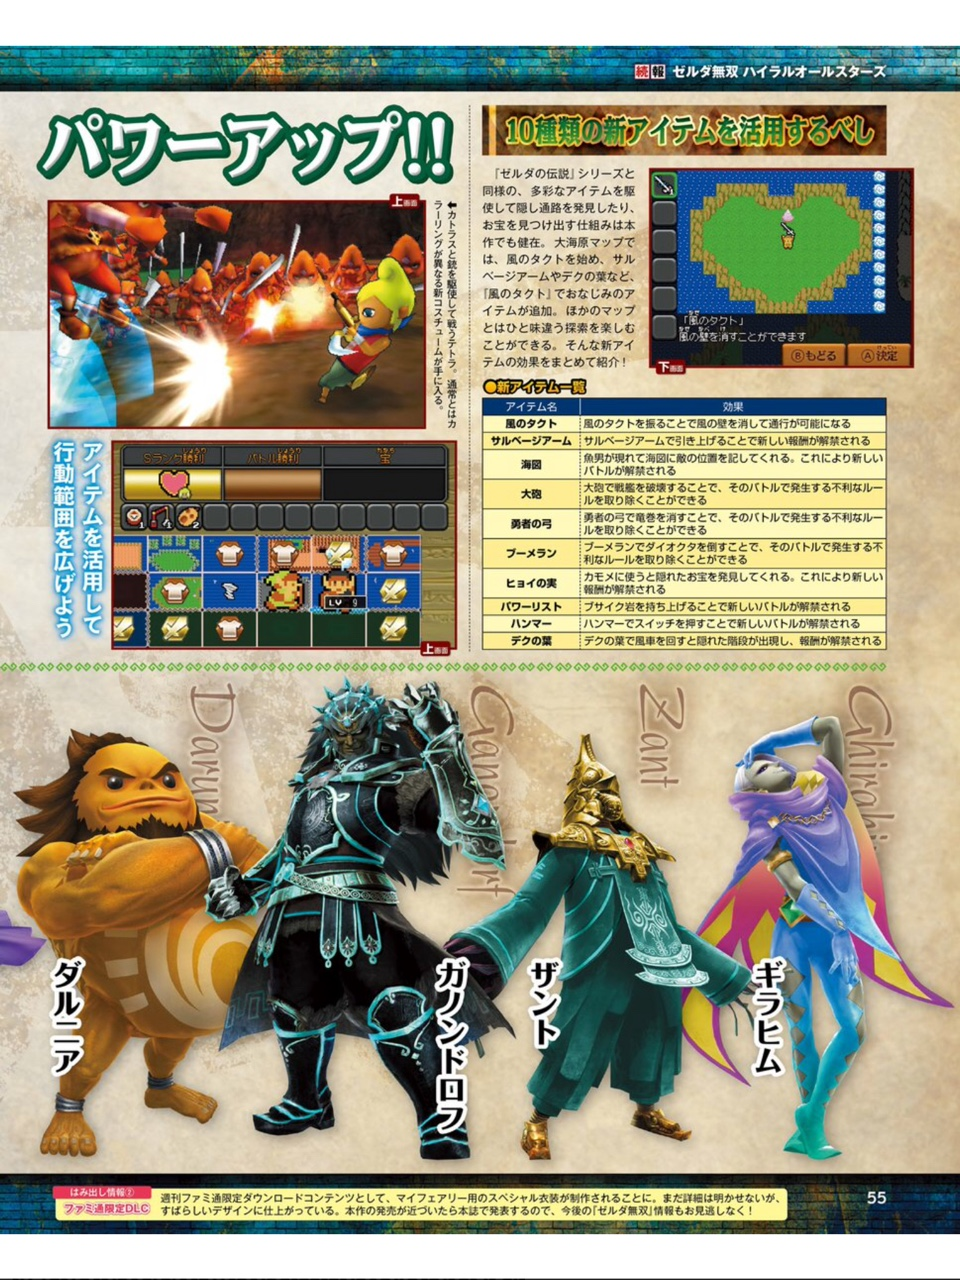 Hyrule Warriors Legends Details Scans From Famitsu My Fairy Adventure Mode Streetpass Perfectly Nintendo